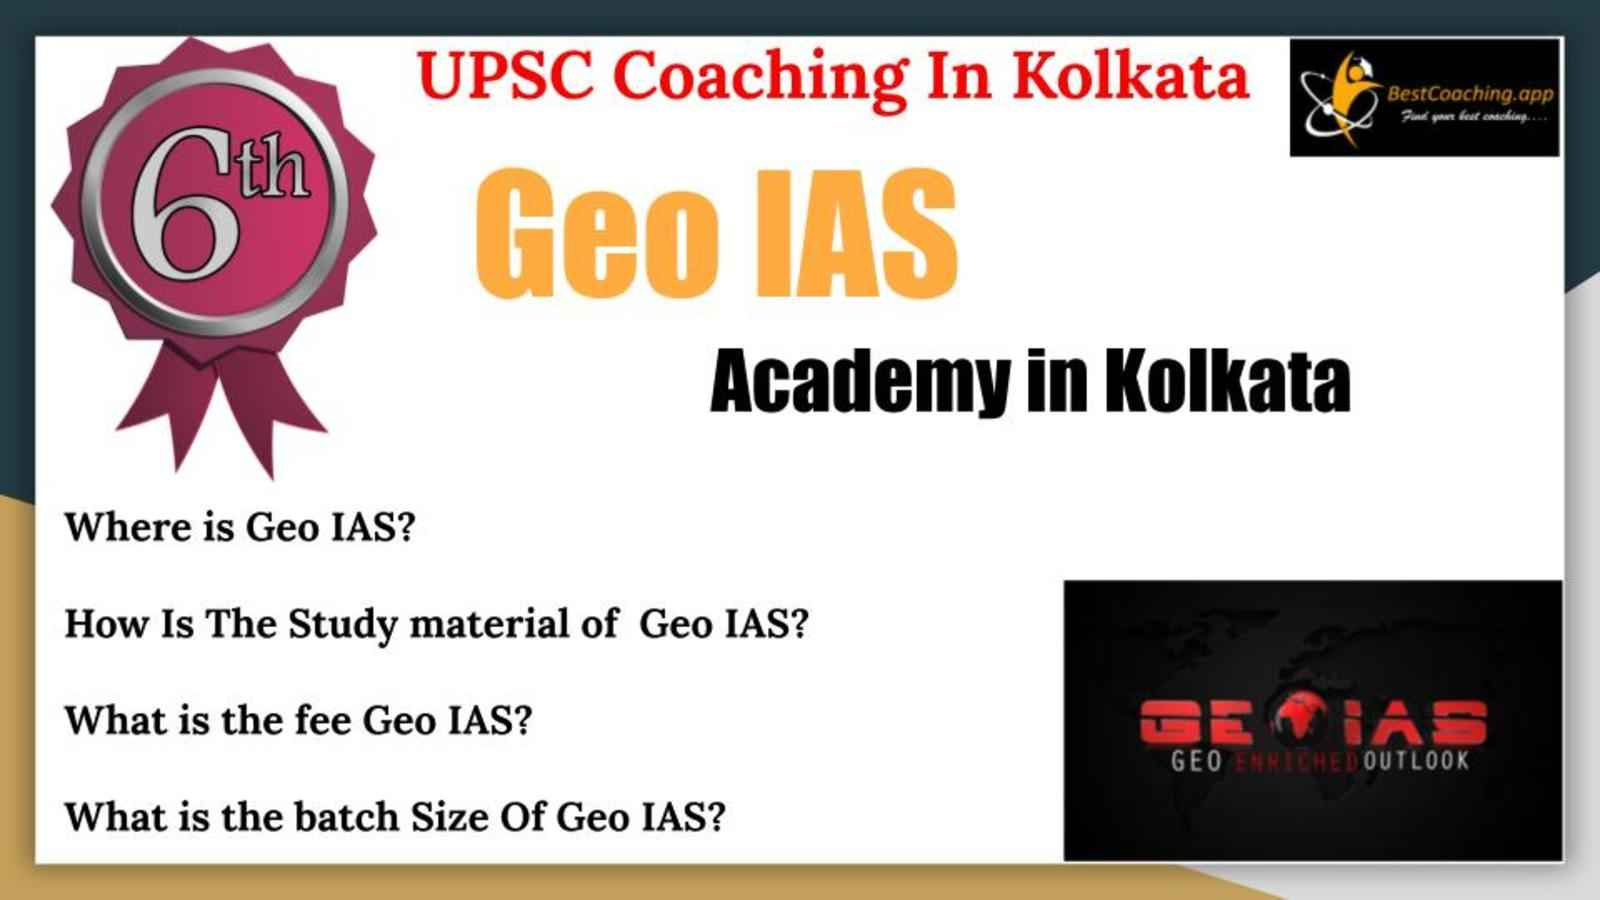 Best UPSC Coaching of Kolkata